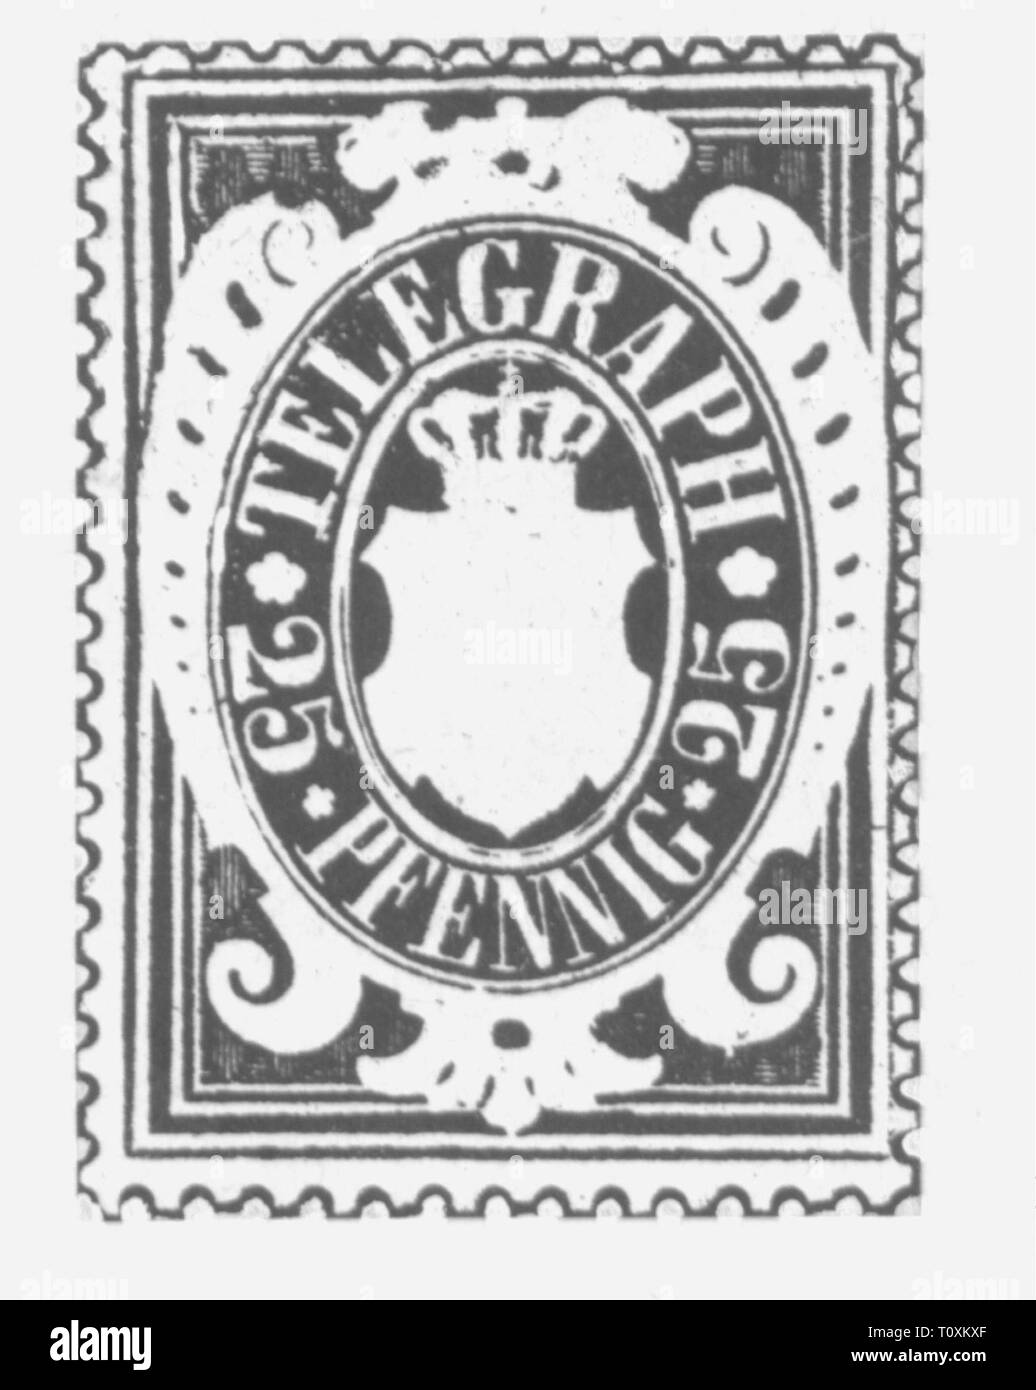 mail, postage stamps, Germany, Bavaria, 25 pfennig telegraph stamp, 1876, Additional-Rights-Clearance-Info-Not-Available - Stock Image